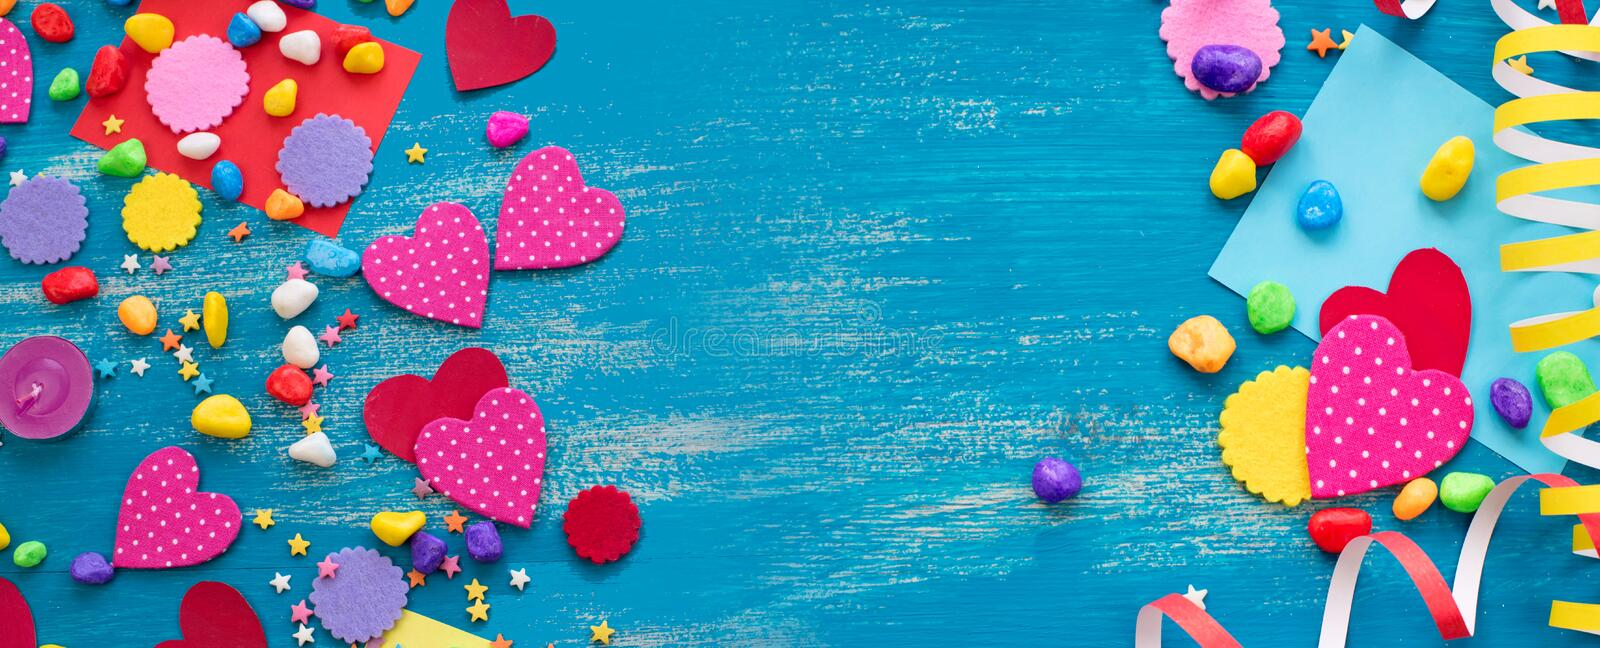 Banner Decorative holiday background with streamers confetti candy hearts decor. Blue shabby wooden top view background flat lay royalty free stock photos